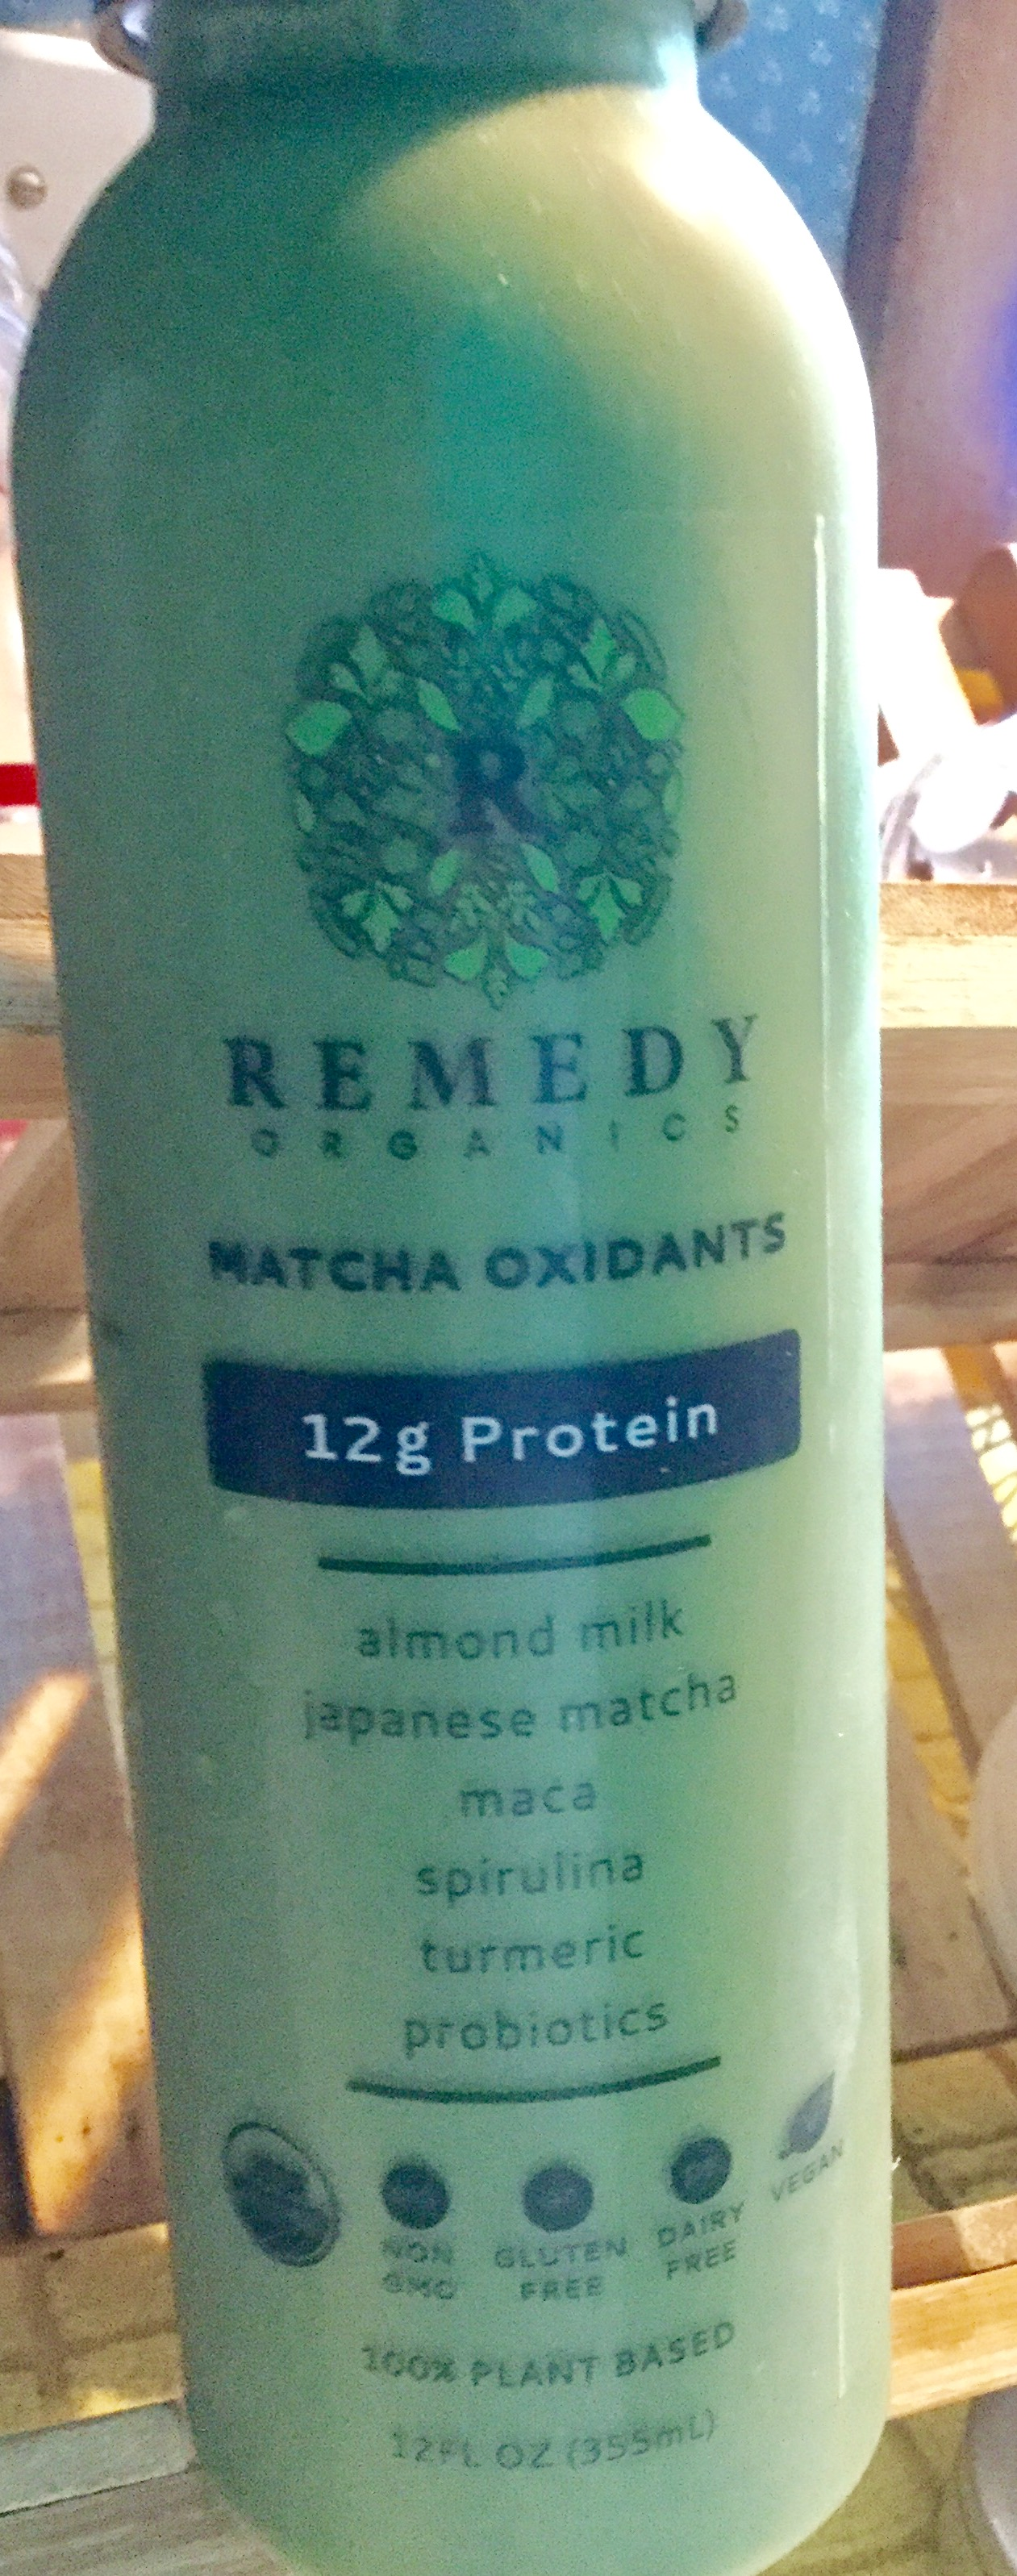 Plant based RTD beverage found in the Organic Section of Wegman's